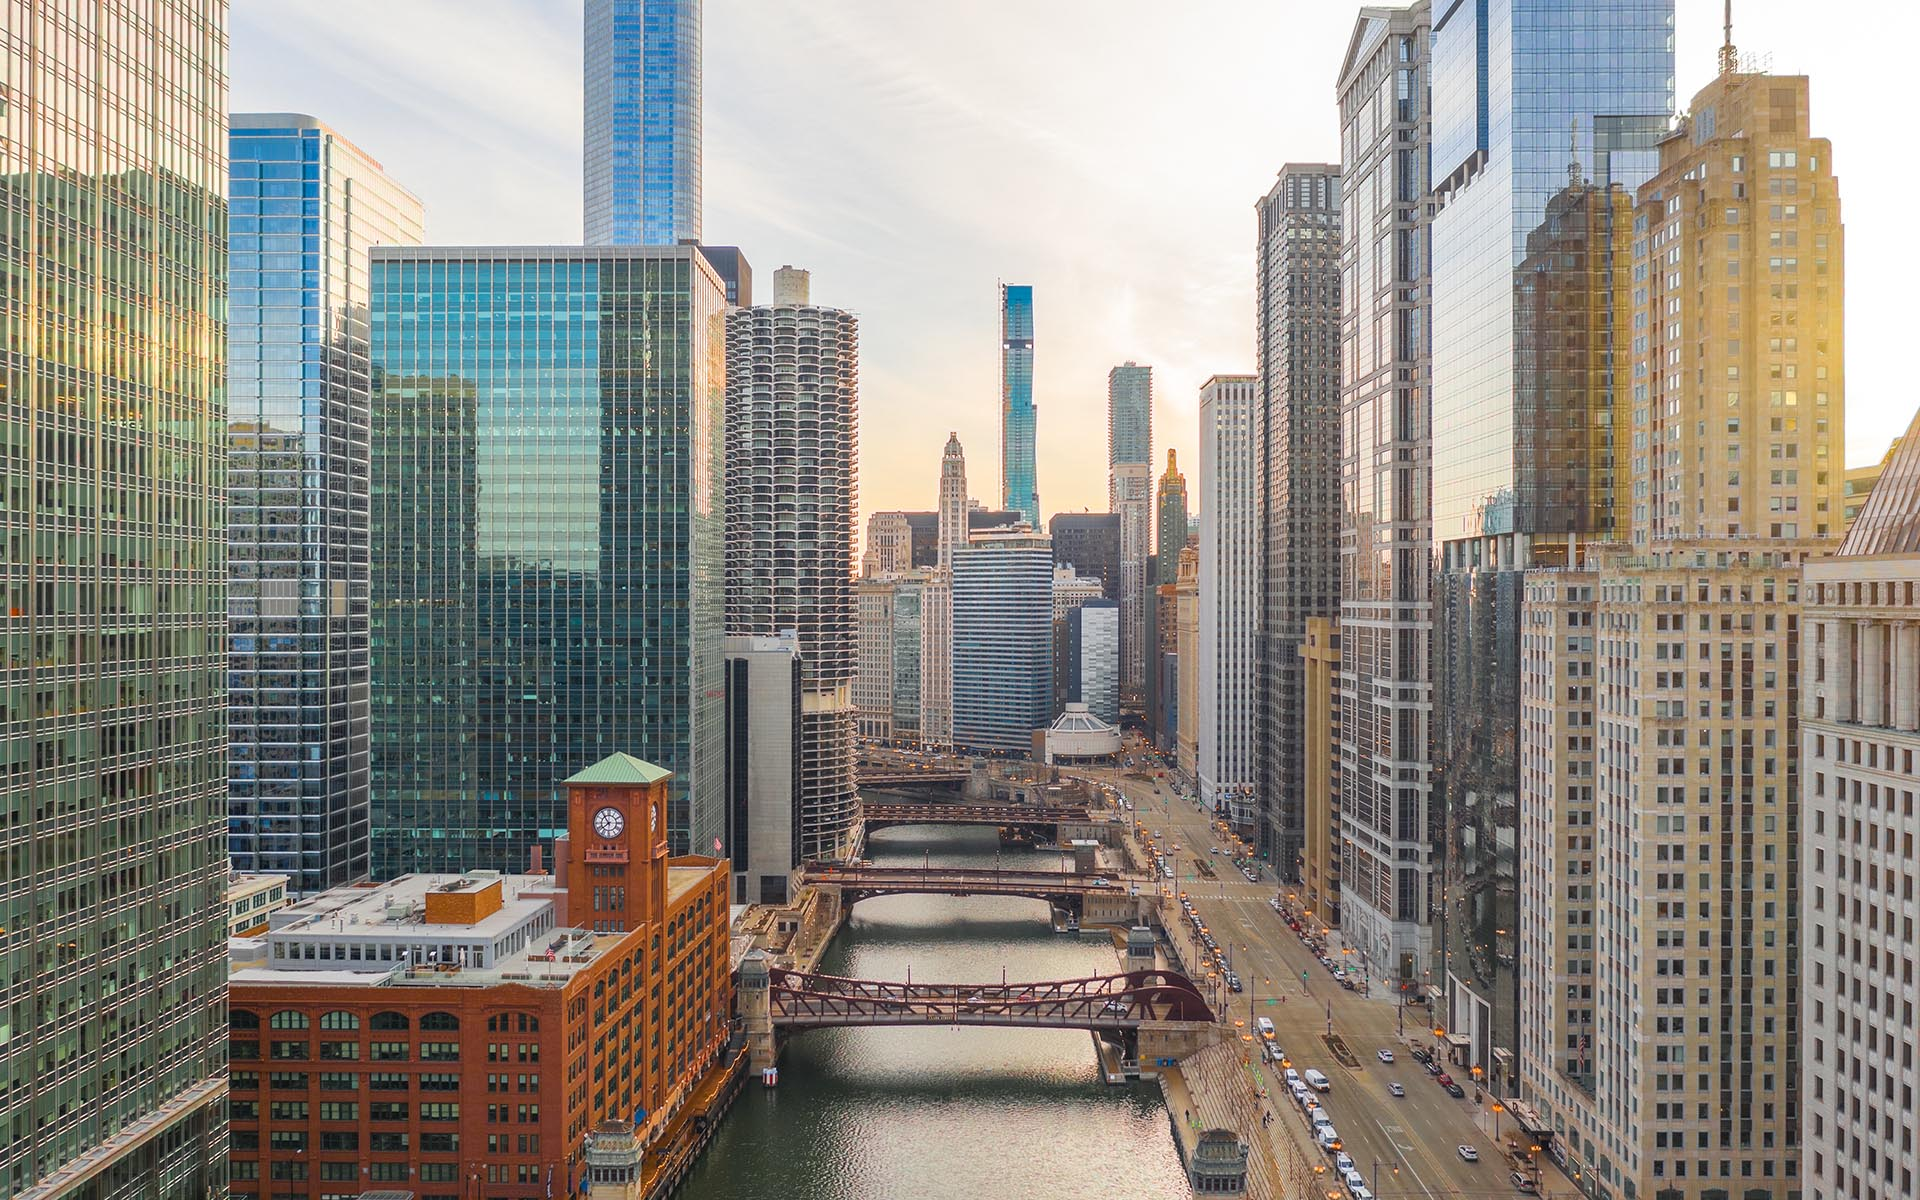 Client Center - Downtown Chicago at Dawn, the Chicago River Crossed by Bridges, Large High Rises Lining the Banks